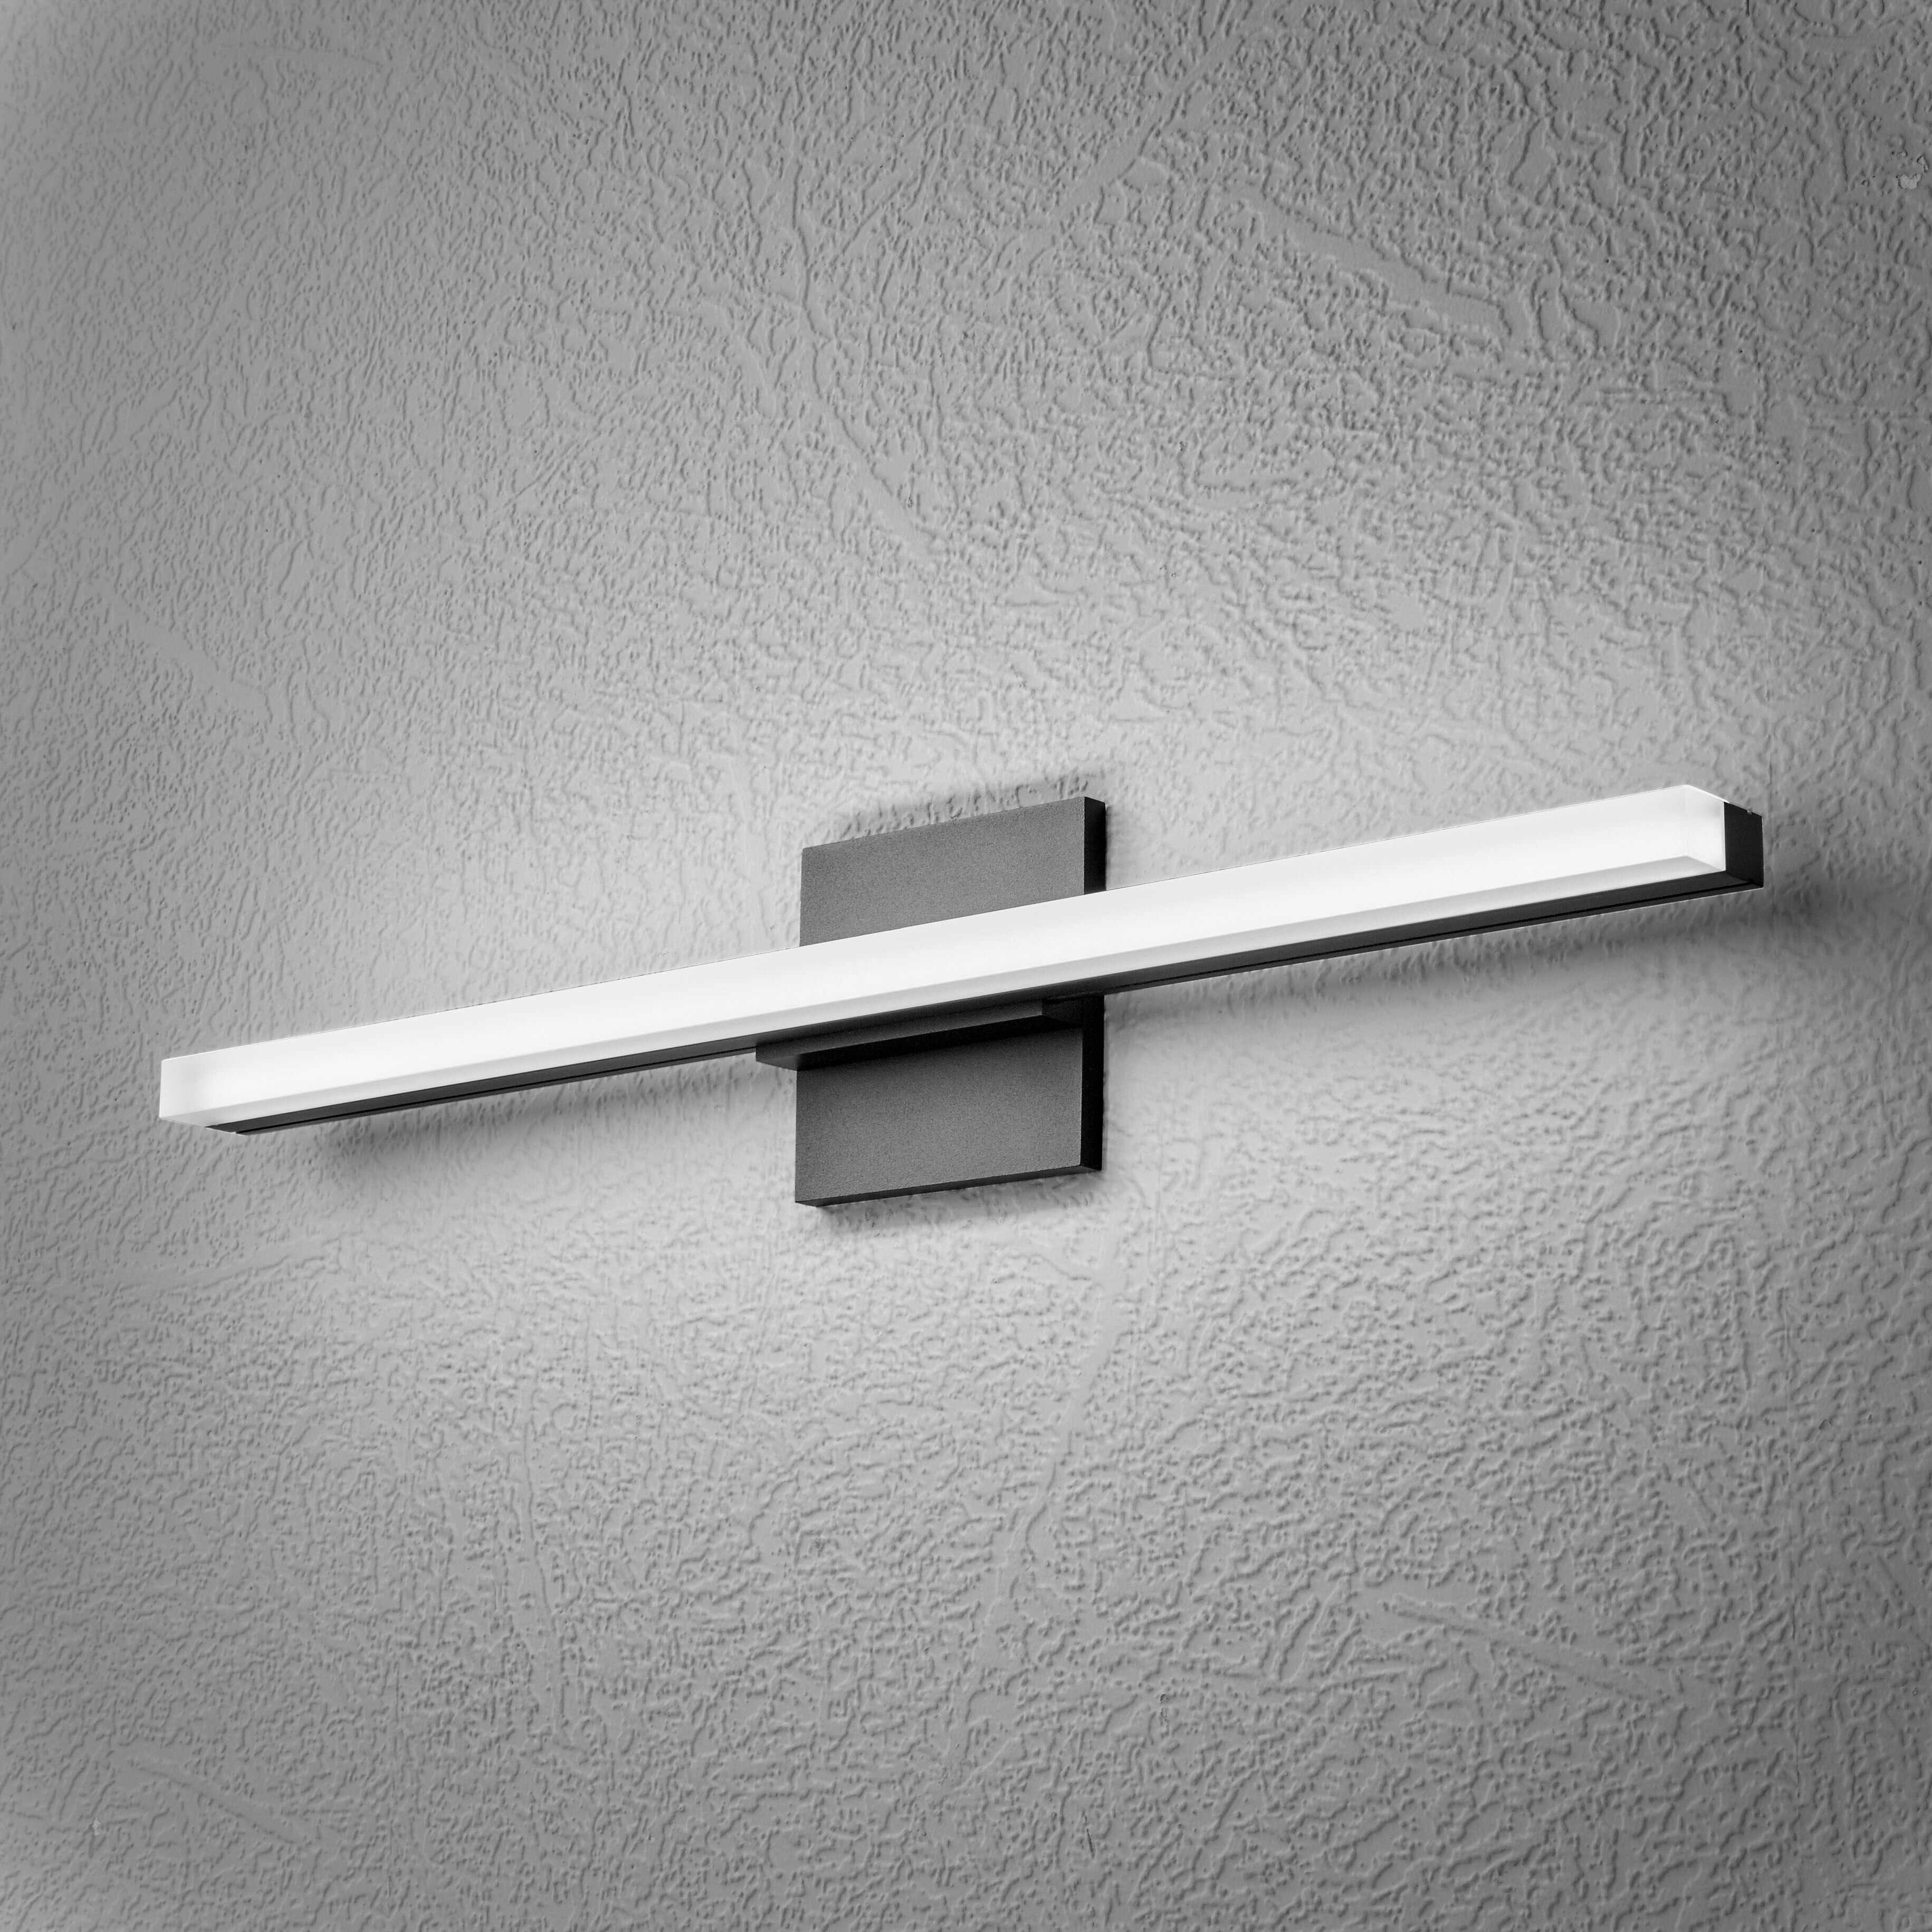 Orren Ellis Reicherter 1 Light Dimmable Led Bath Bar Wayfair